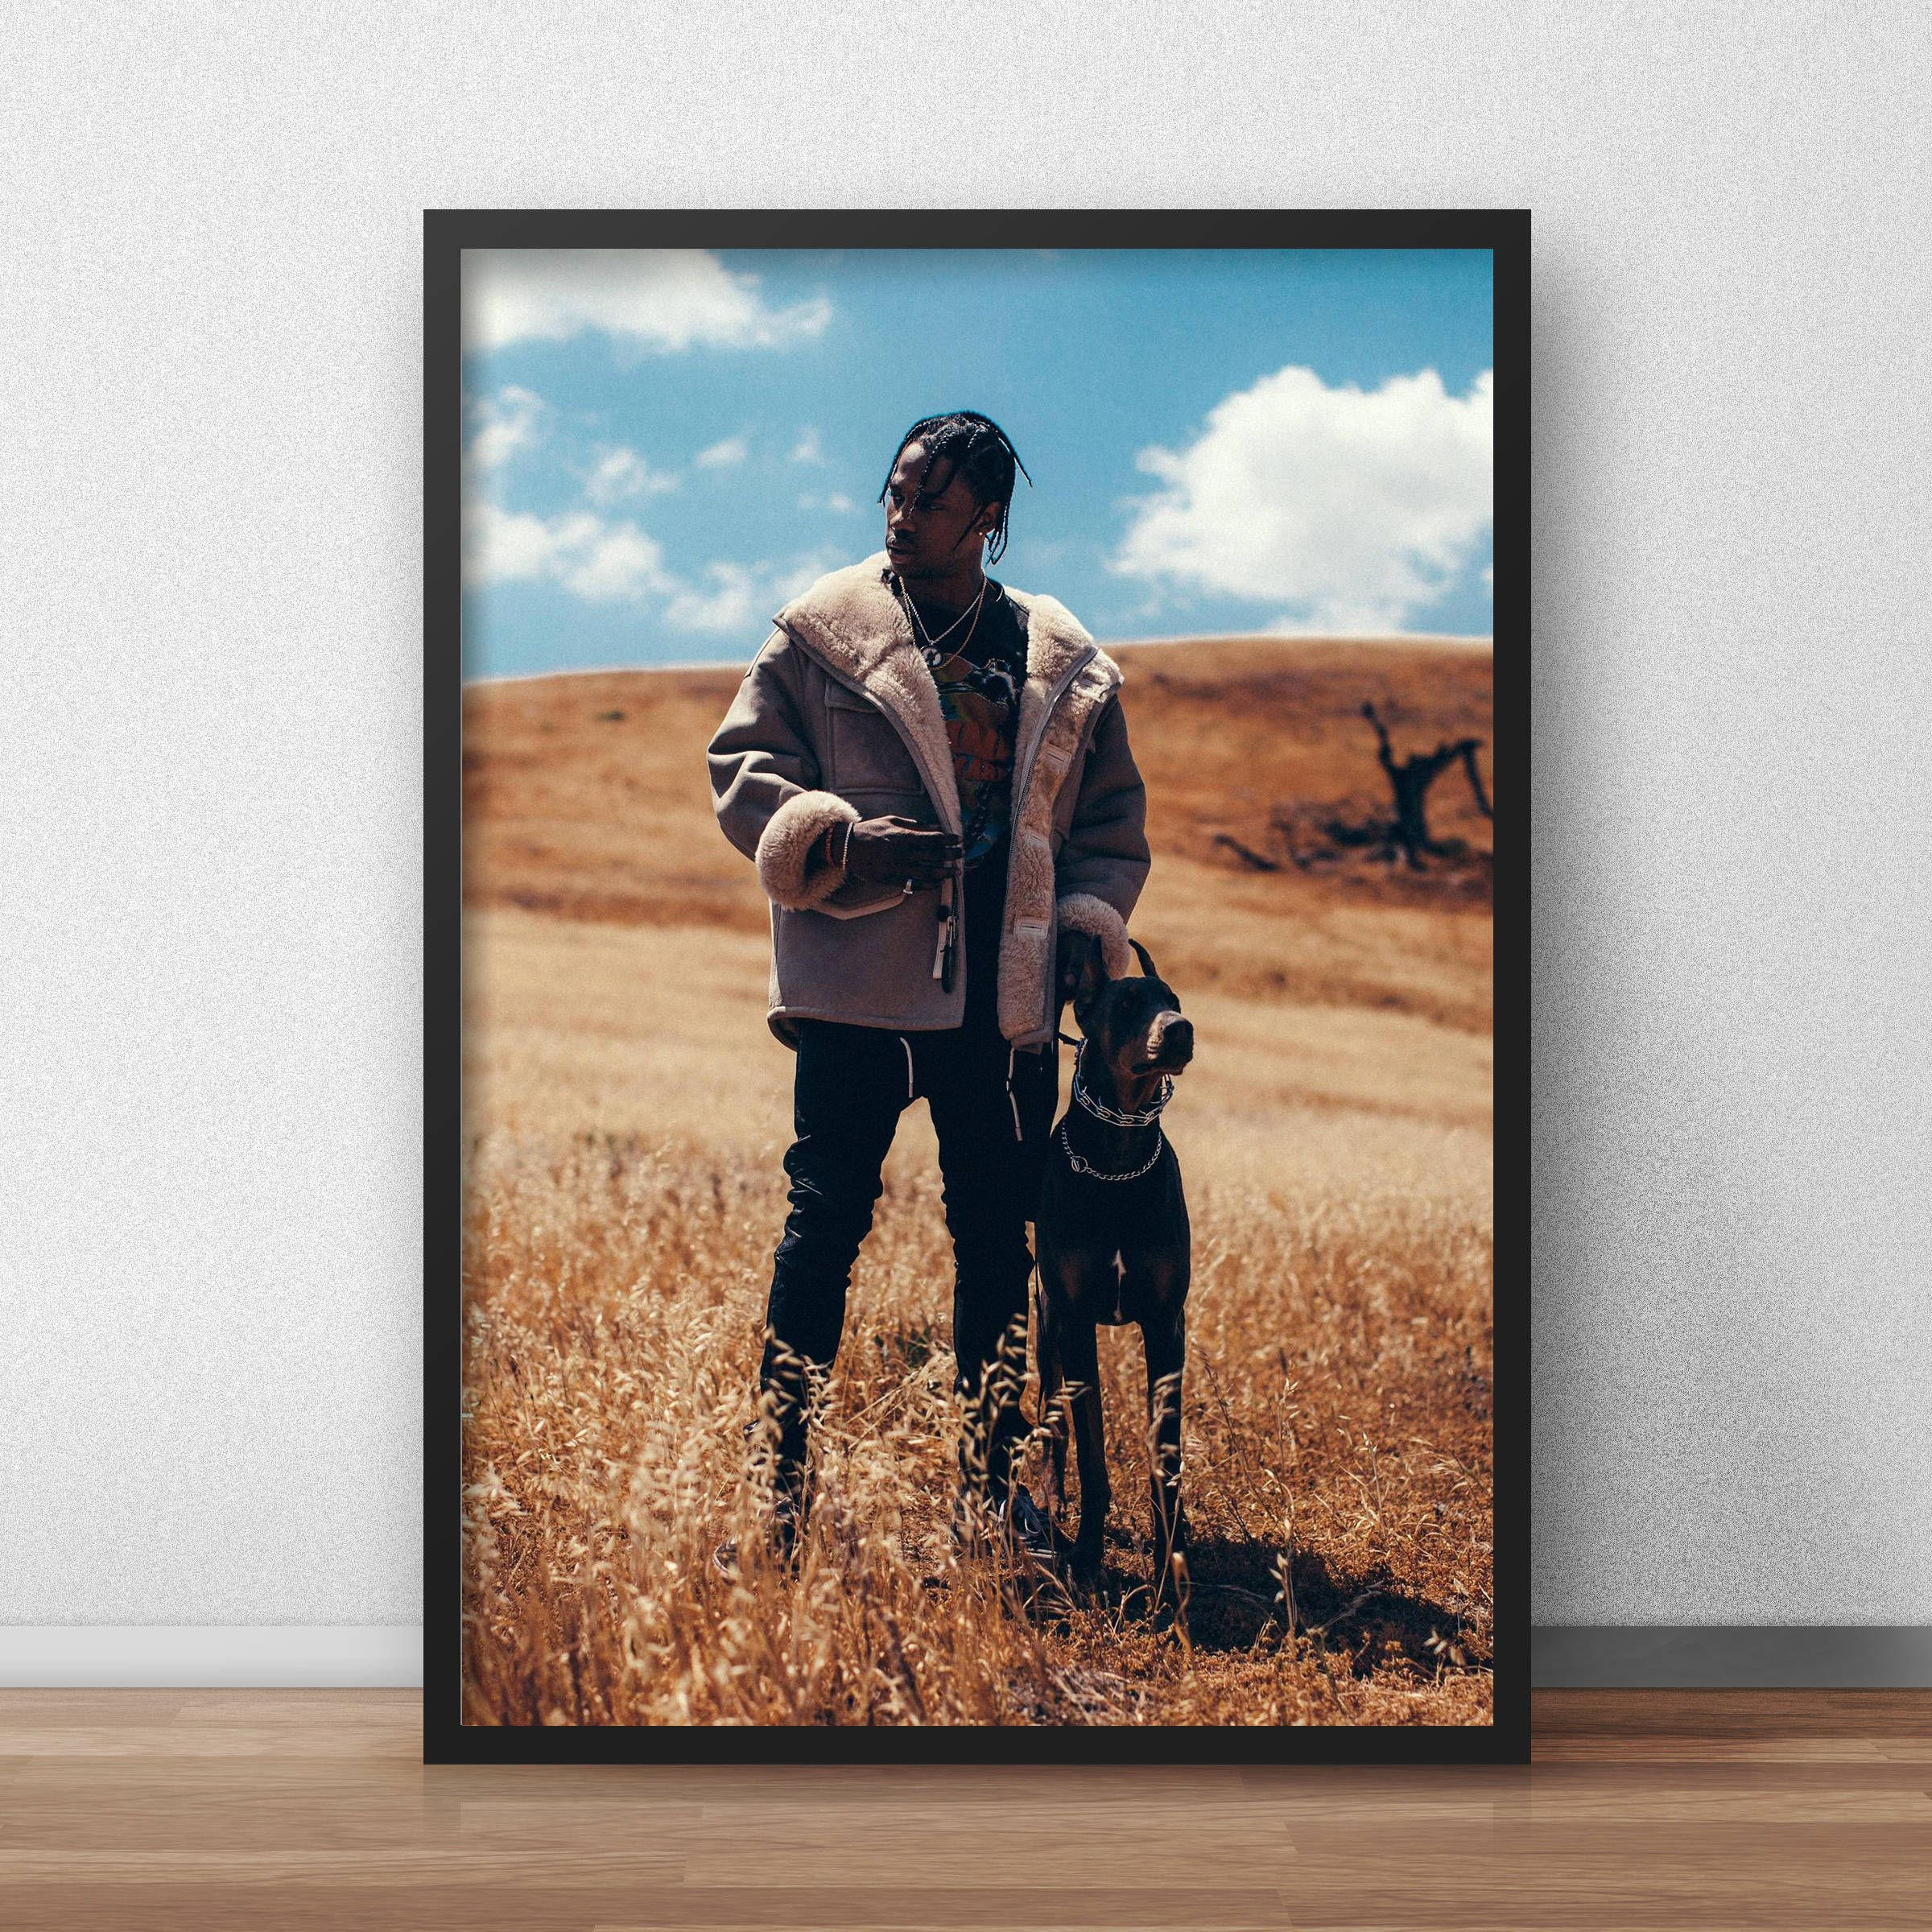 363a31c71d03 Travis Scott Poster - Instant Download - Hip Hop Poster, Travis Scott Print,  Travis Scott Merch, Hip Hop, Travis Scott, Travis Scott Gift